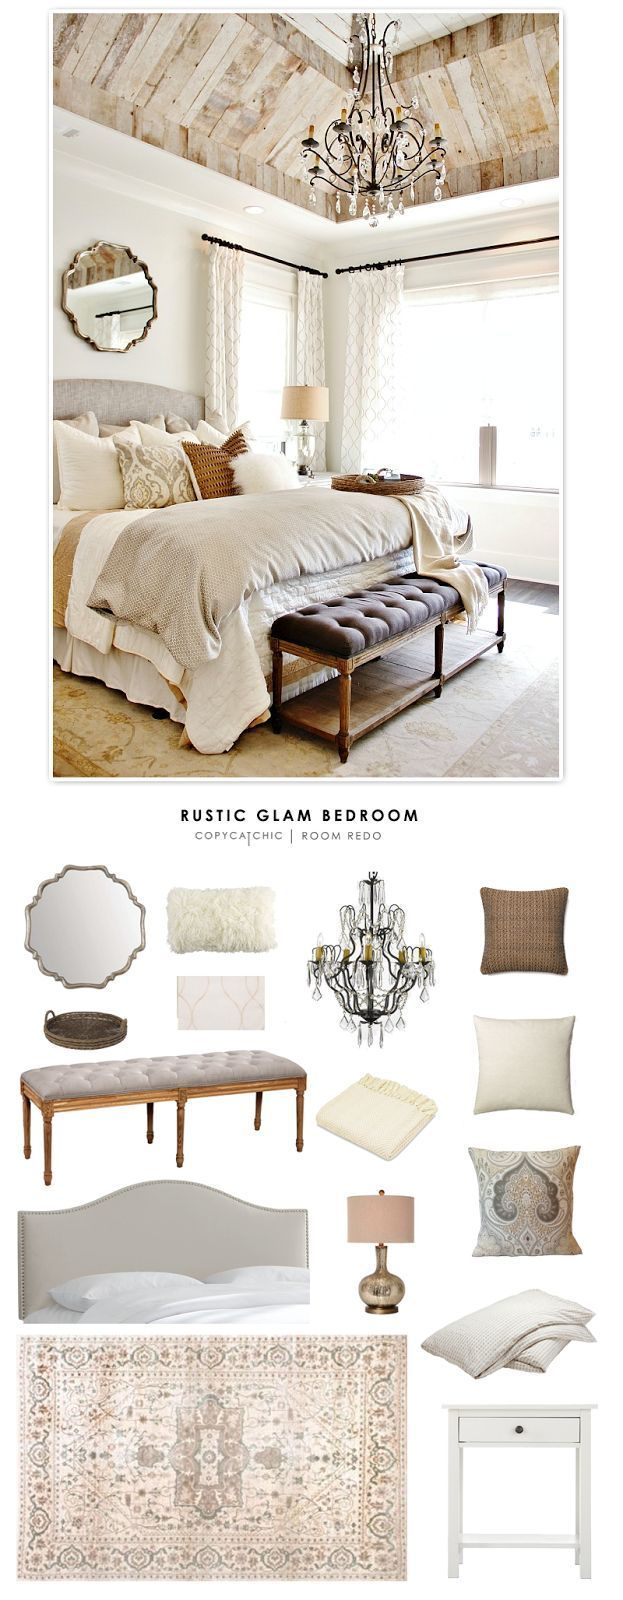 cat bedroom. A rustic glam bedroom designed by Refresh Home and featured Thistlewood  Farms recreated for less Copy Cat Chic audreycdyer Best 25 ideas on Pinterest decor things